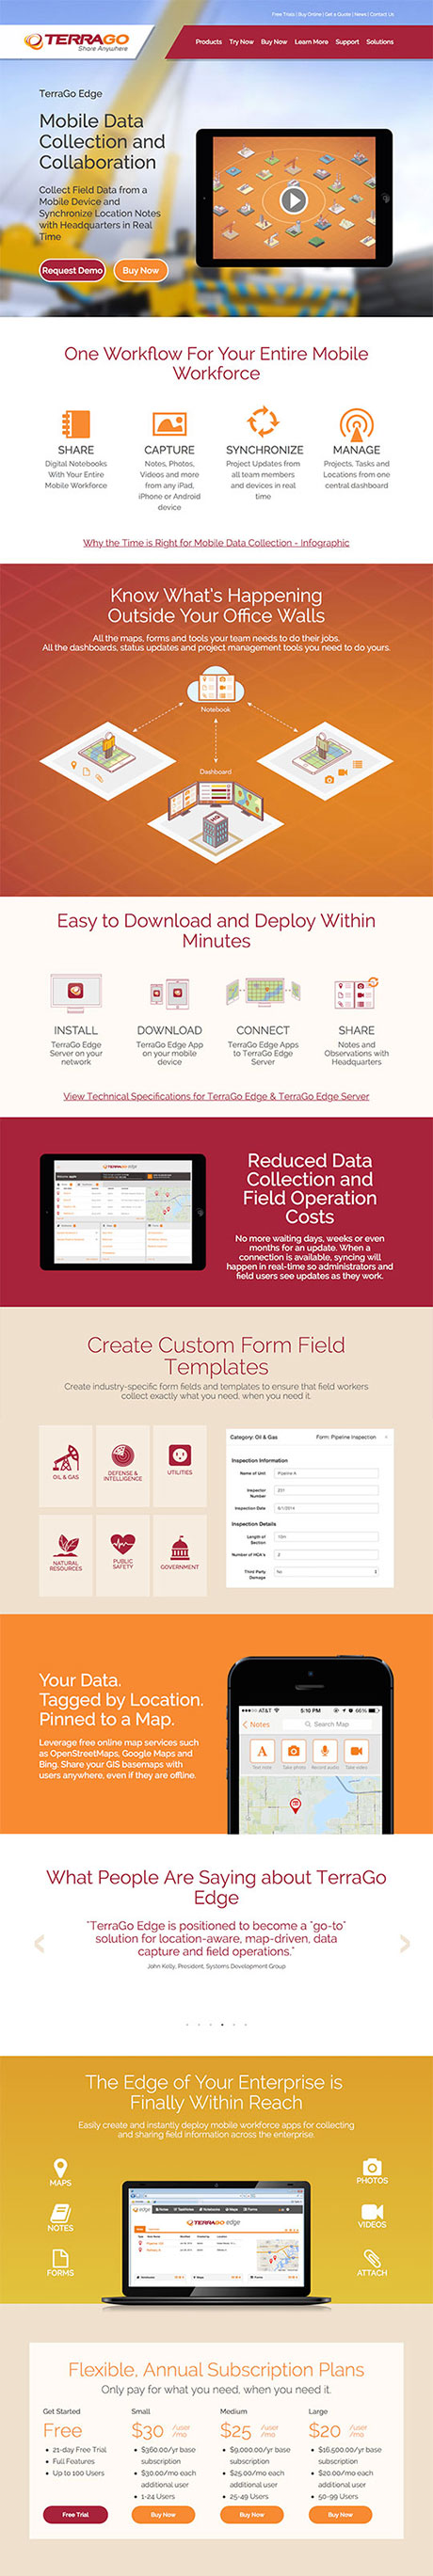 TerraGo Edge Product Page